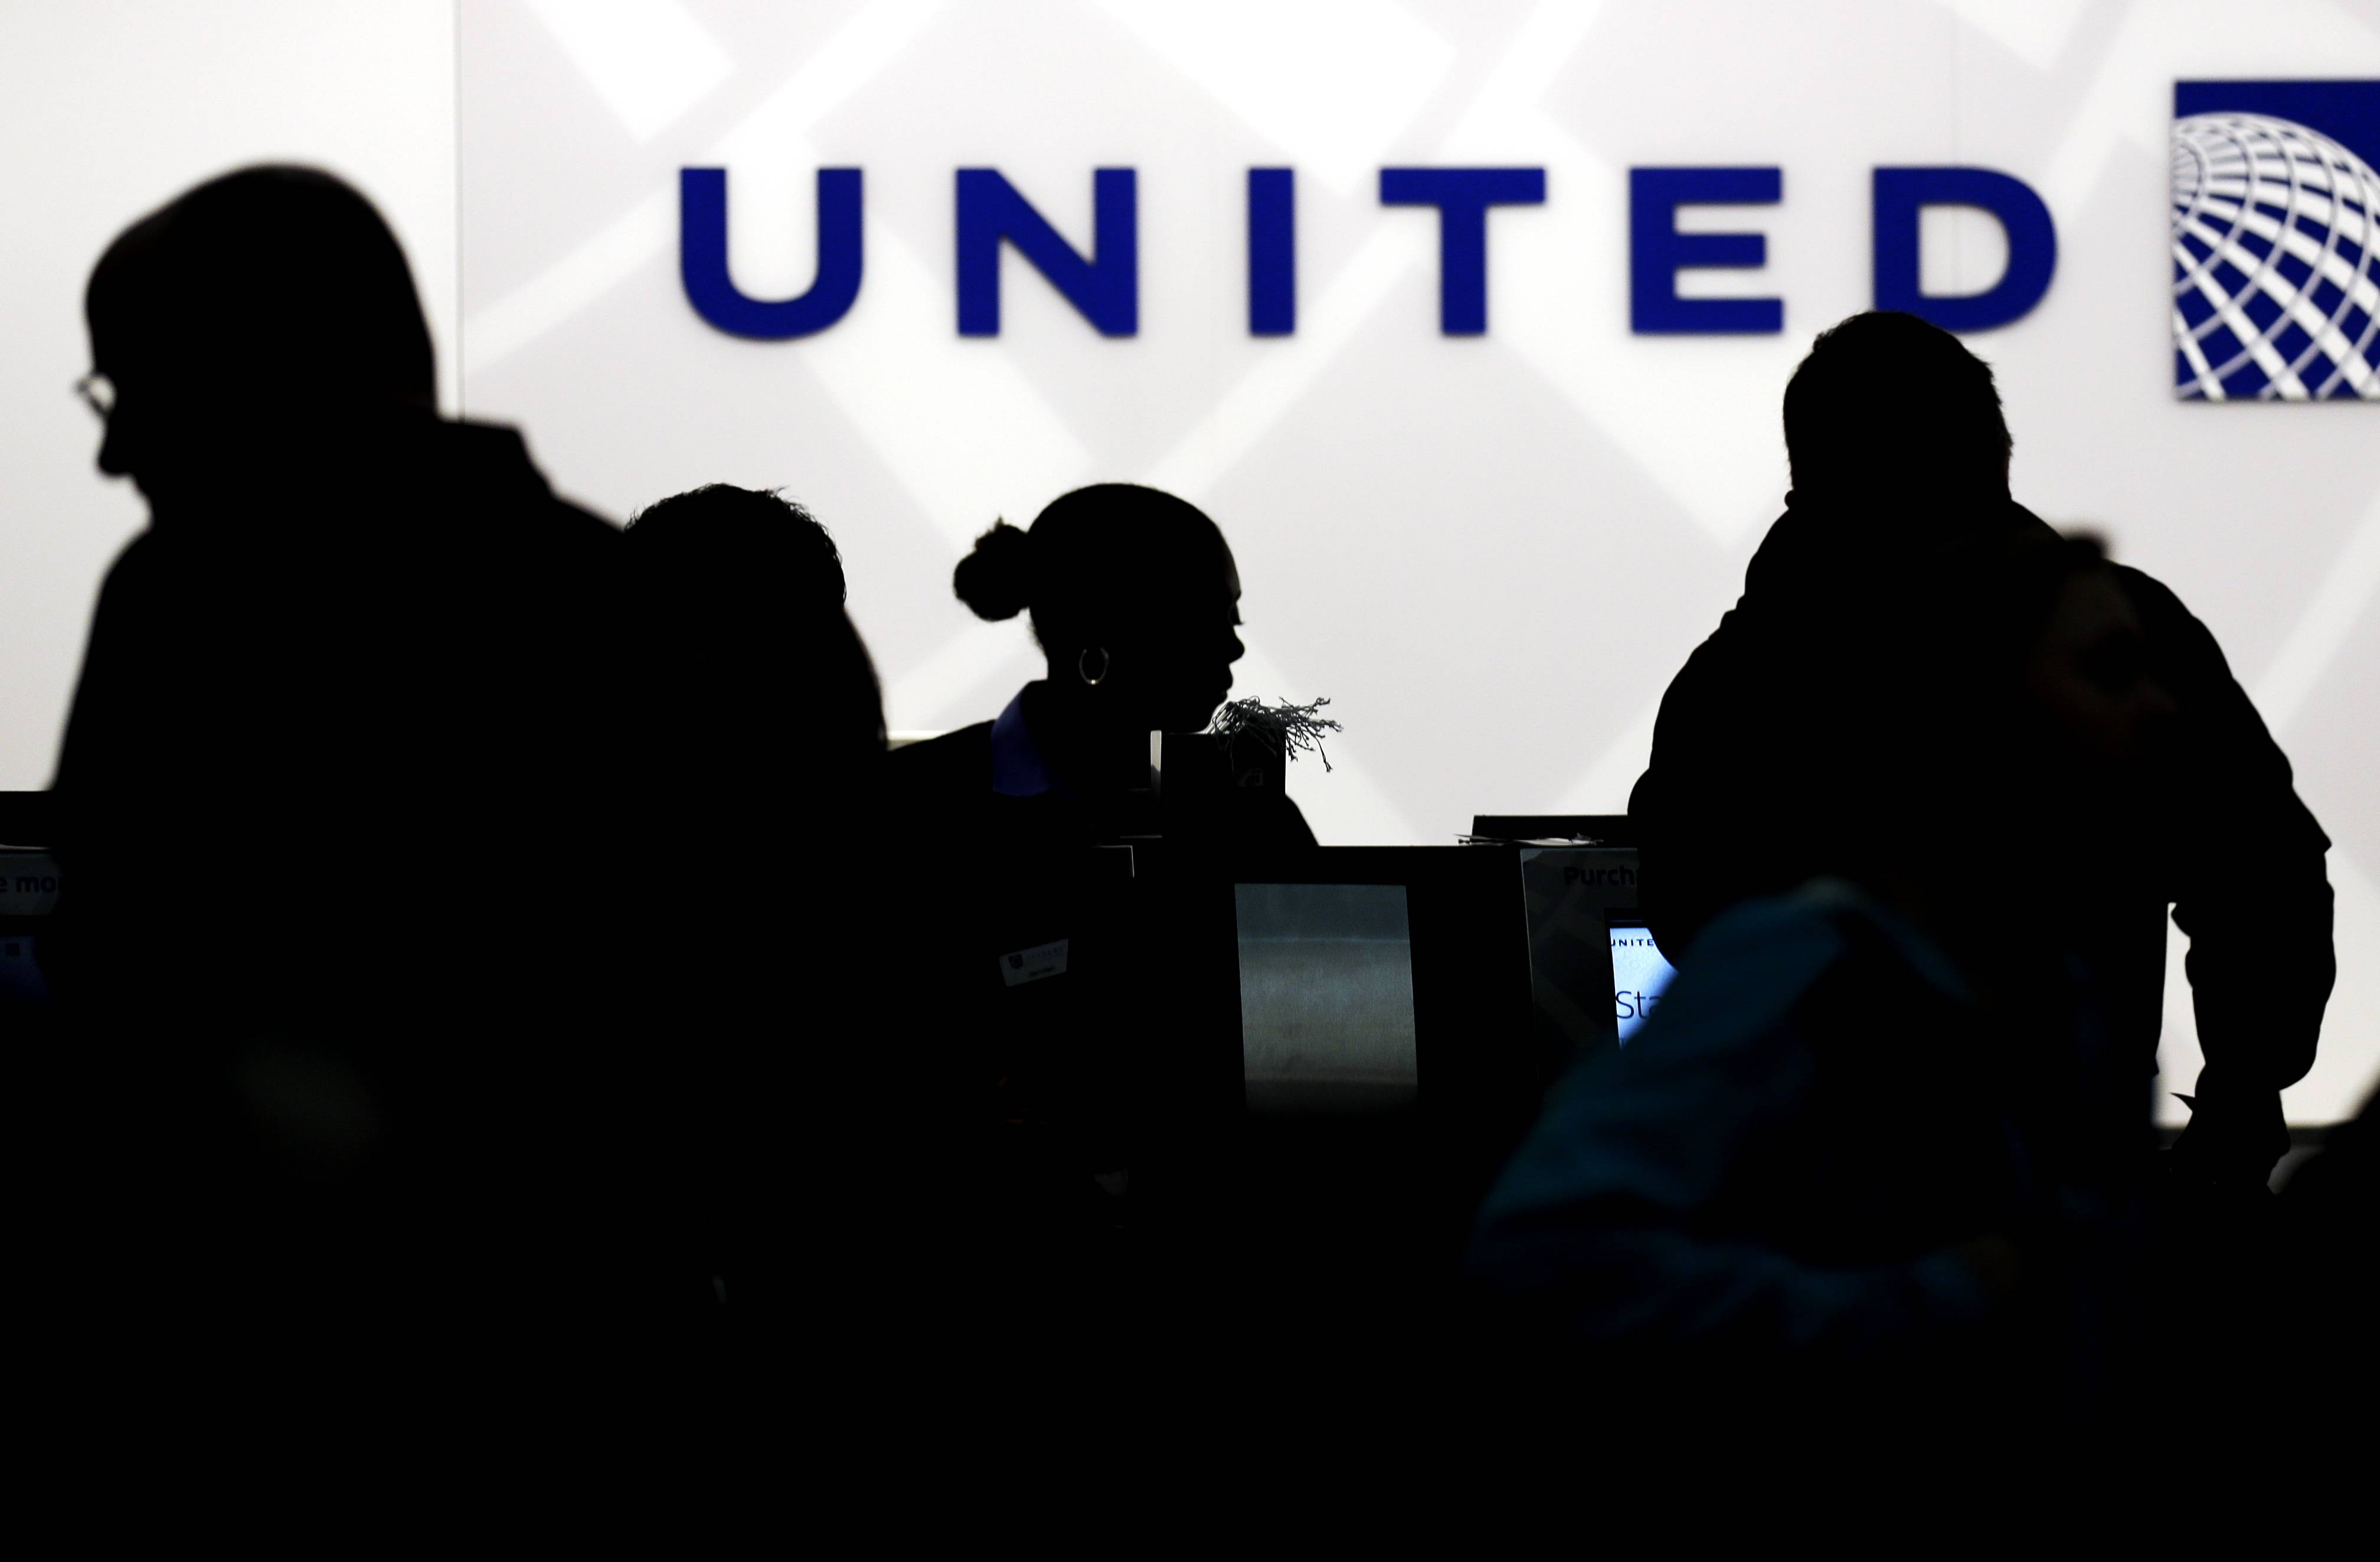 Associated Press/Dec. 21, 2013 Travelers check in at the United Airlines ticket counter at Terminal 1 in O'Hare International Airport.